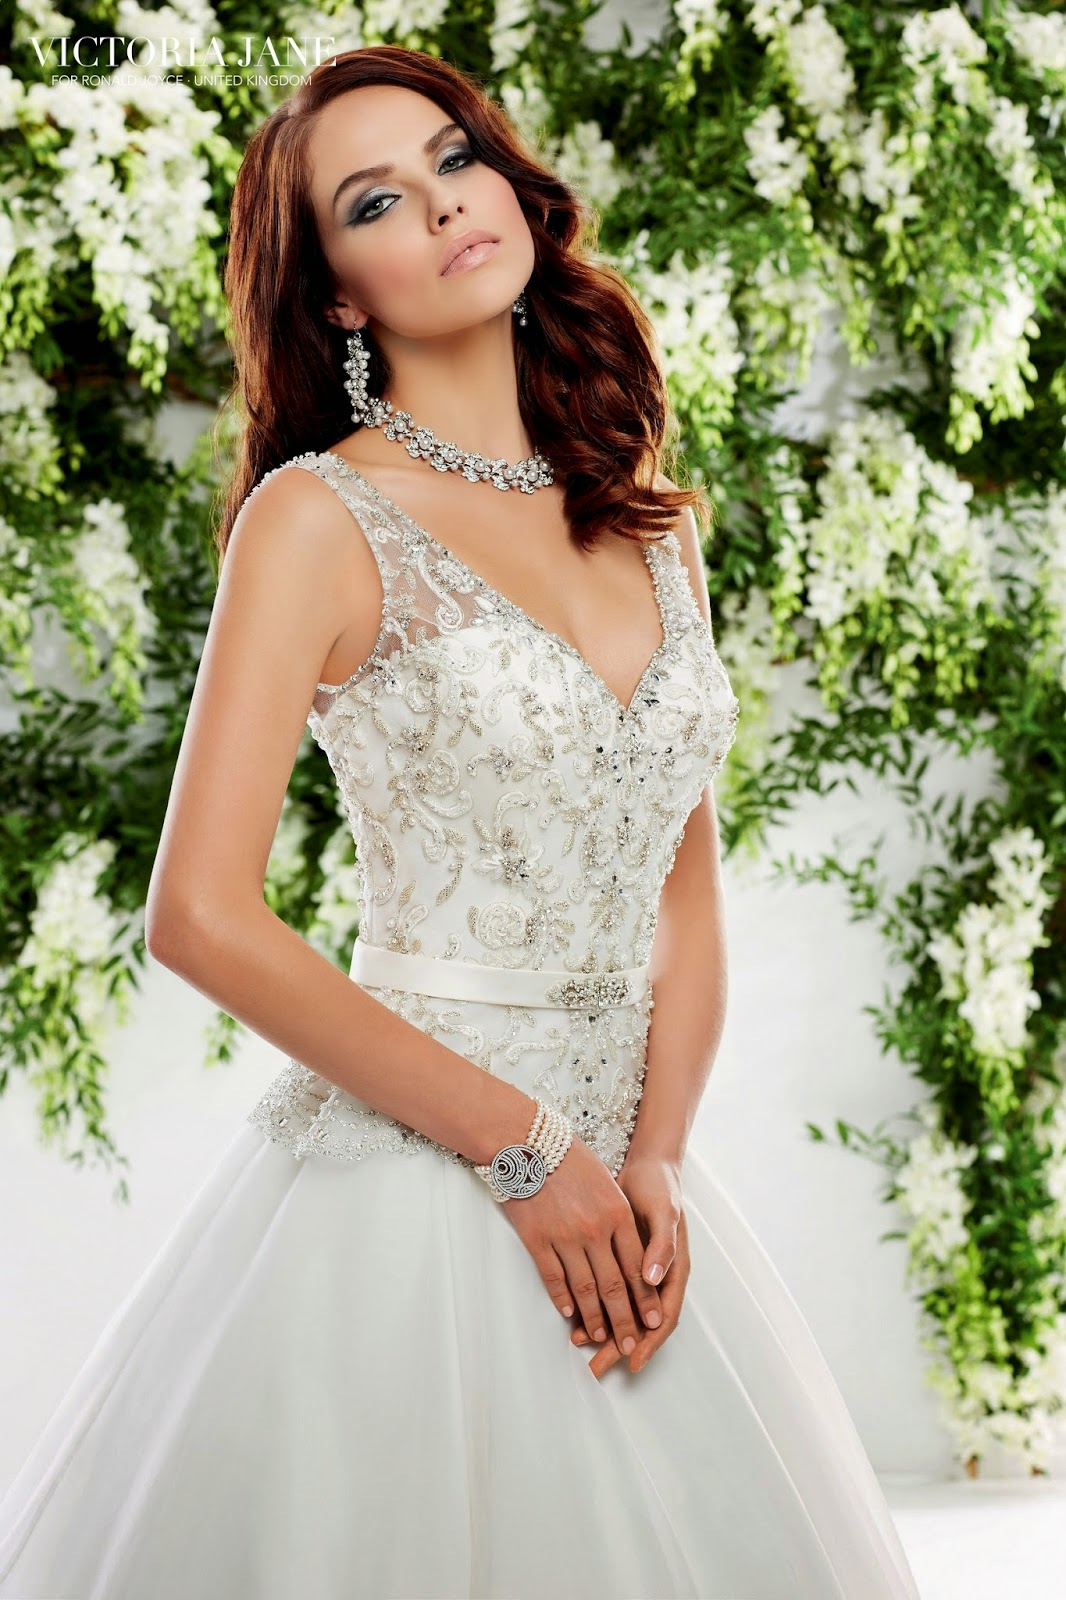 8b7f343b9e The Ronald Joyce Bridal collection for Spring 15 is strikingly beautiful.  Inspired by the glamorous 1930's and theatrical 20's era, this collection  ...